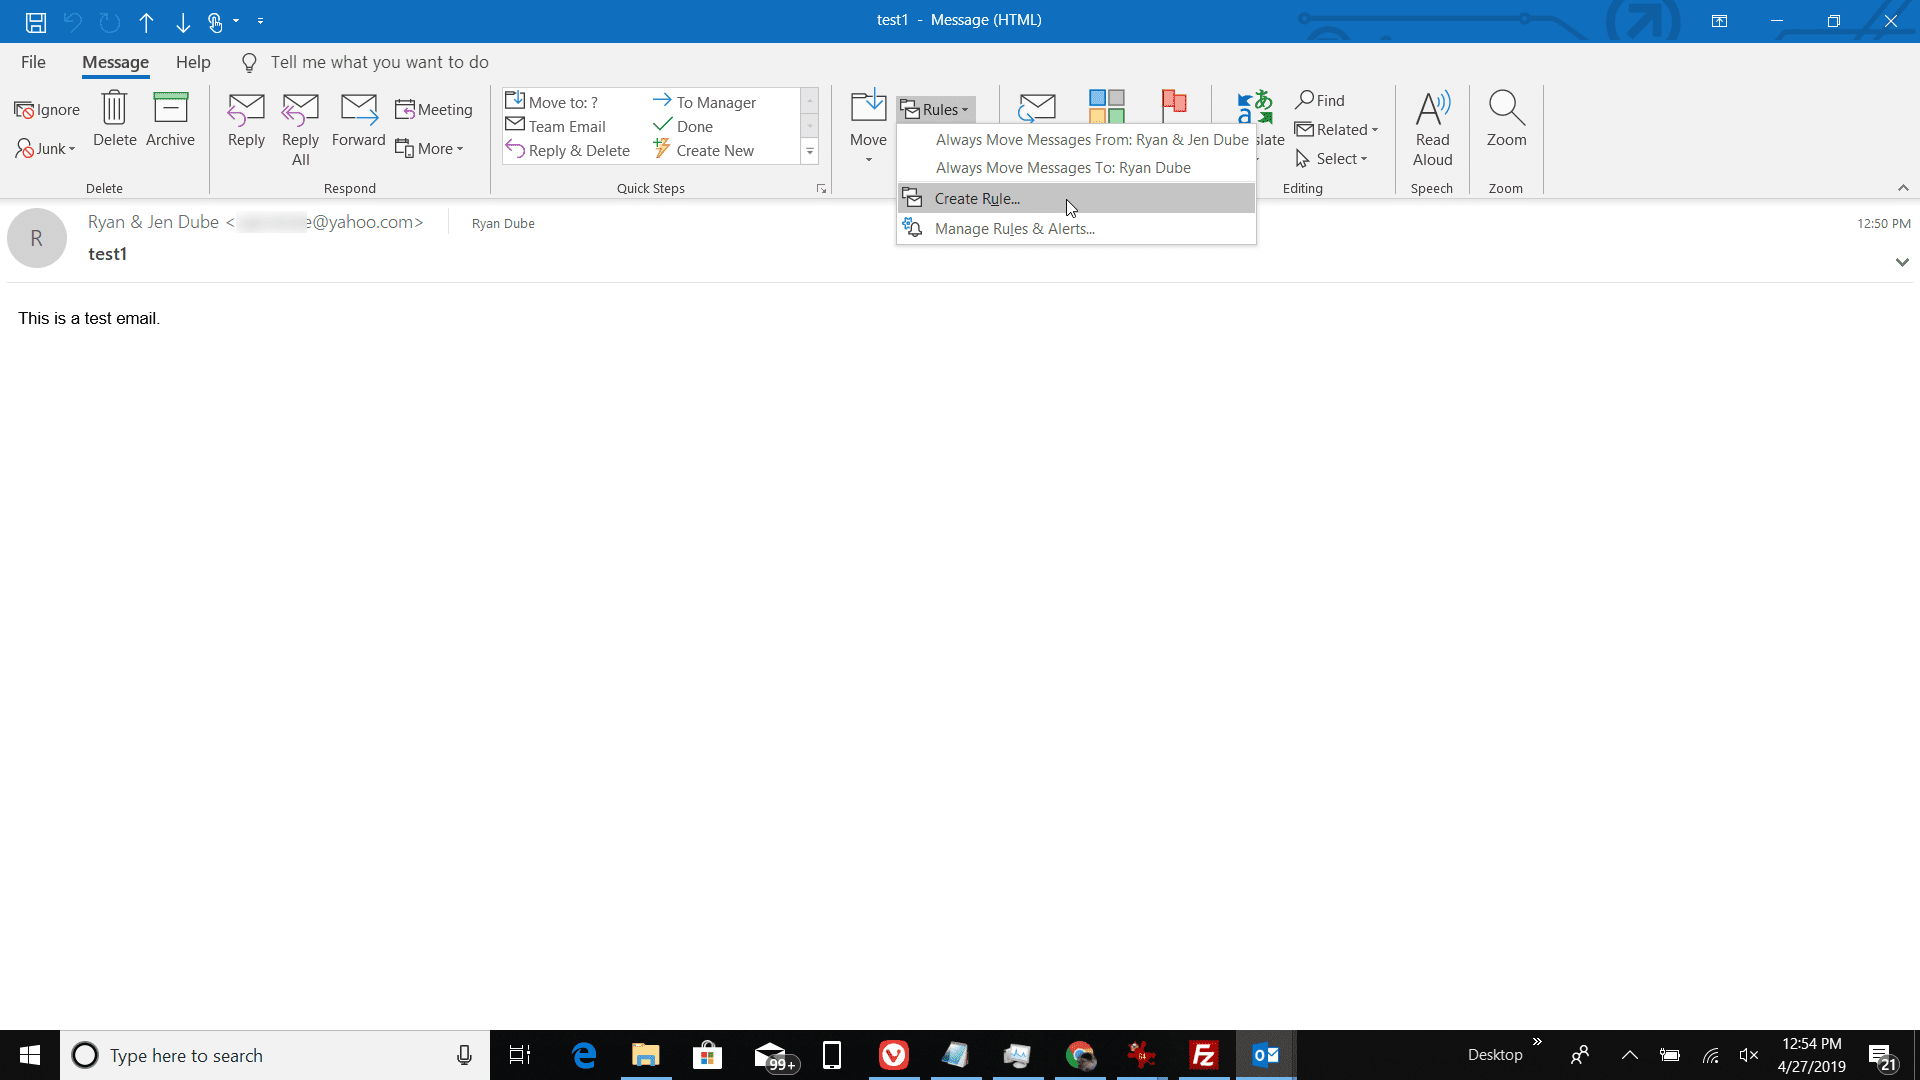 Filter One Sender's Mail to a Certain Folder in Outlook